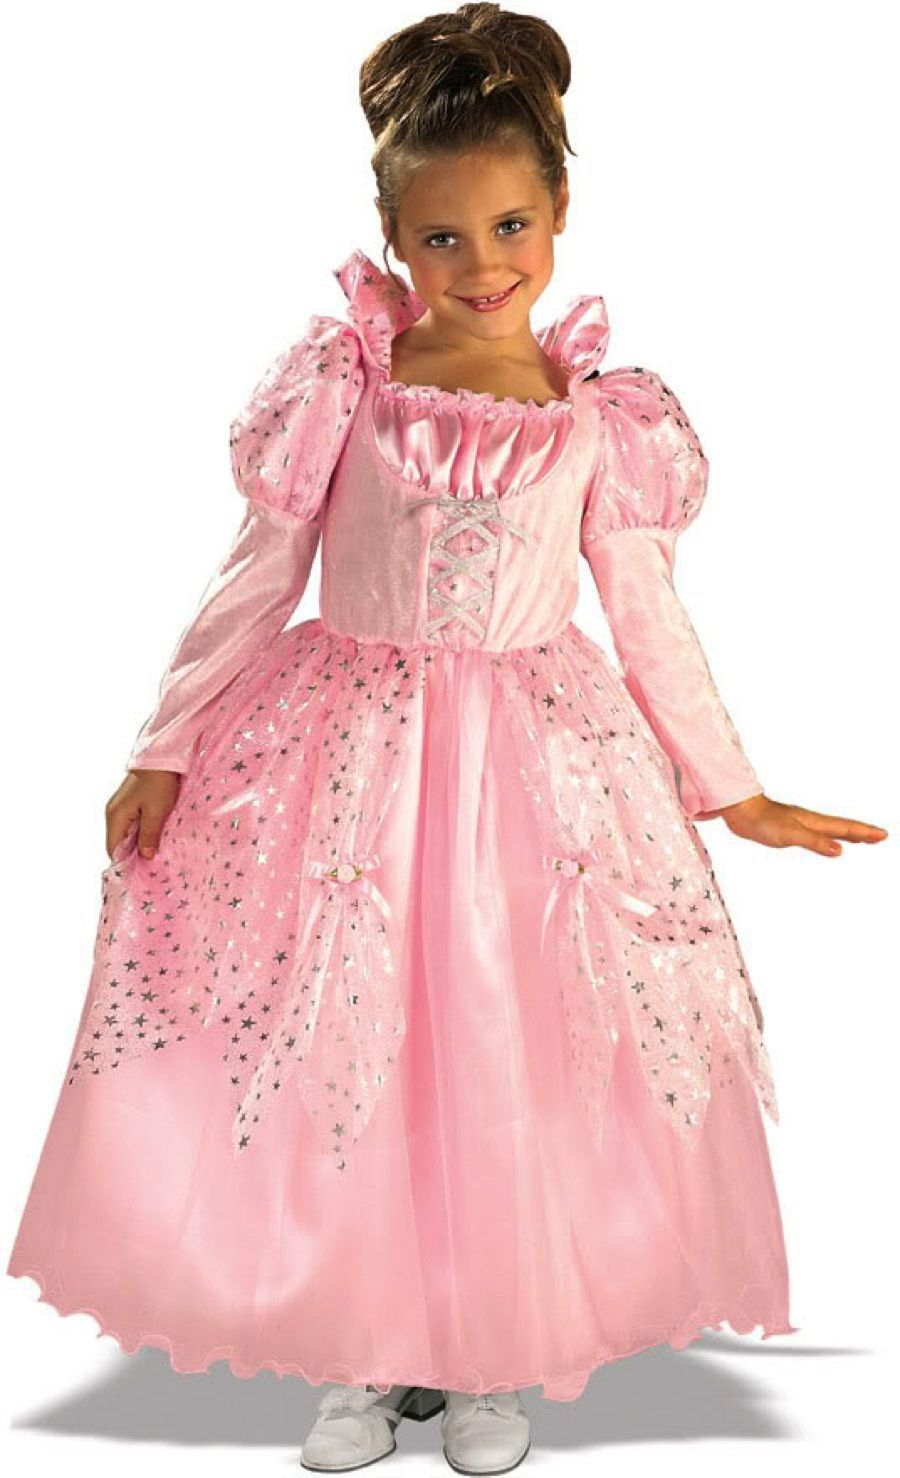 Posh Pink Fairy Tale Sleeping Beauty Princess Aurora Gown/Dress Costume, Rubies